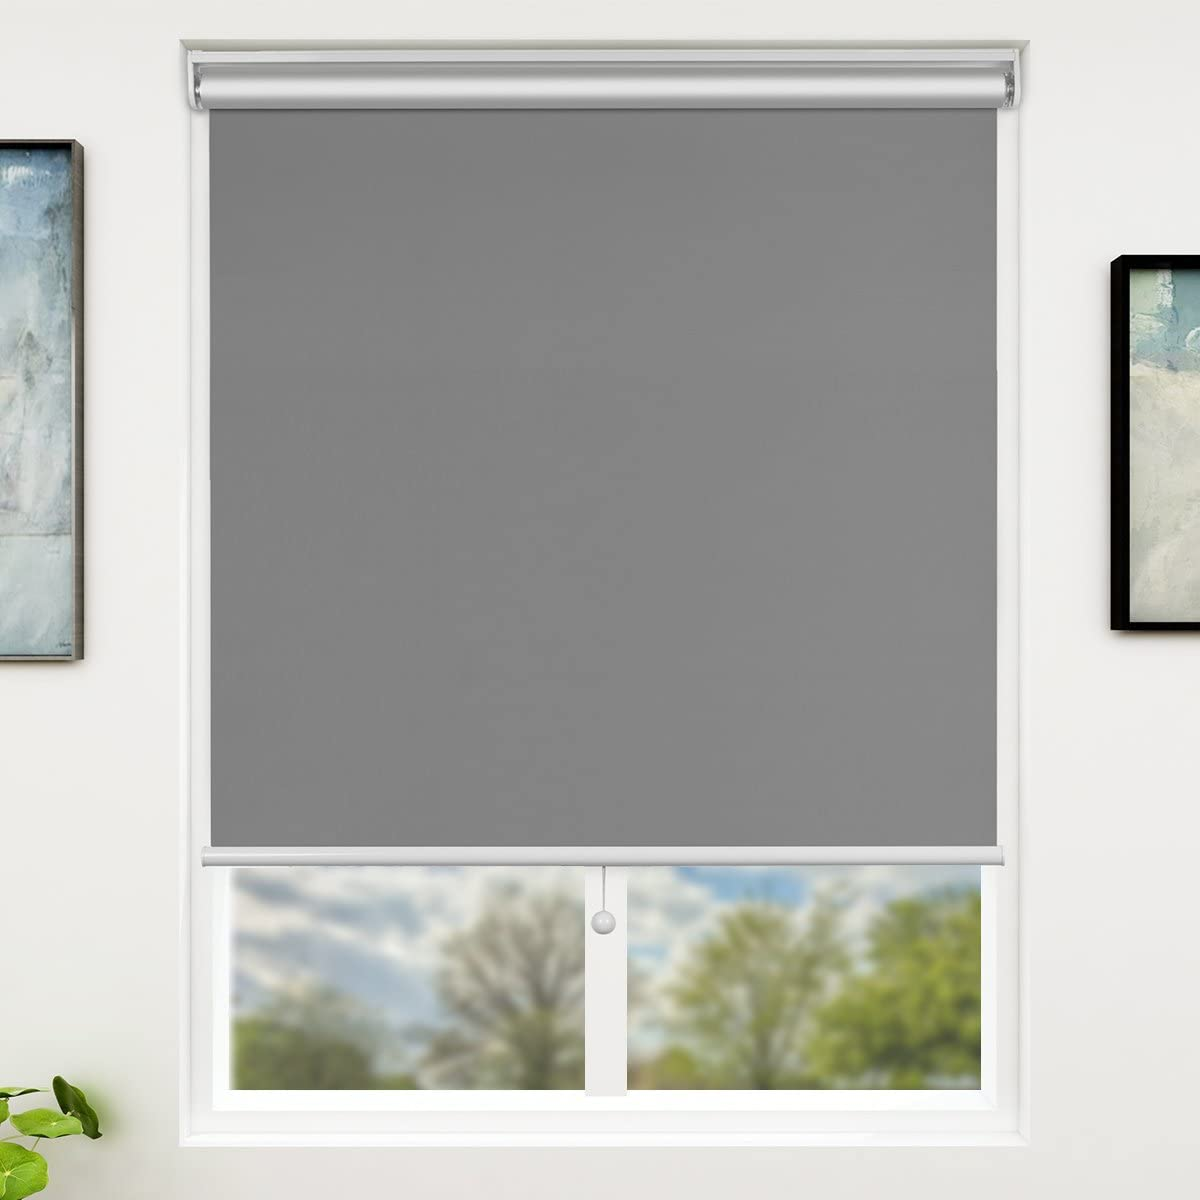 SUNFREE 28 x 72 Inch Blackout Window Shades Cordless Window Blinds with Spring Lifting System for Home & Office, Grey